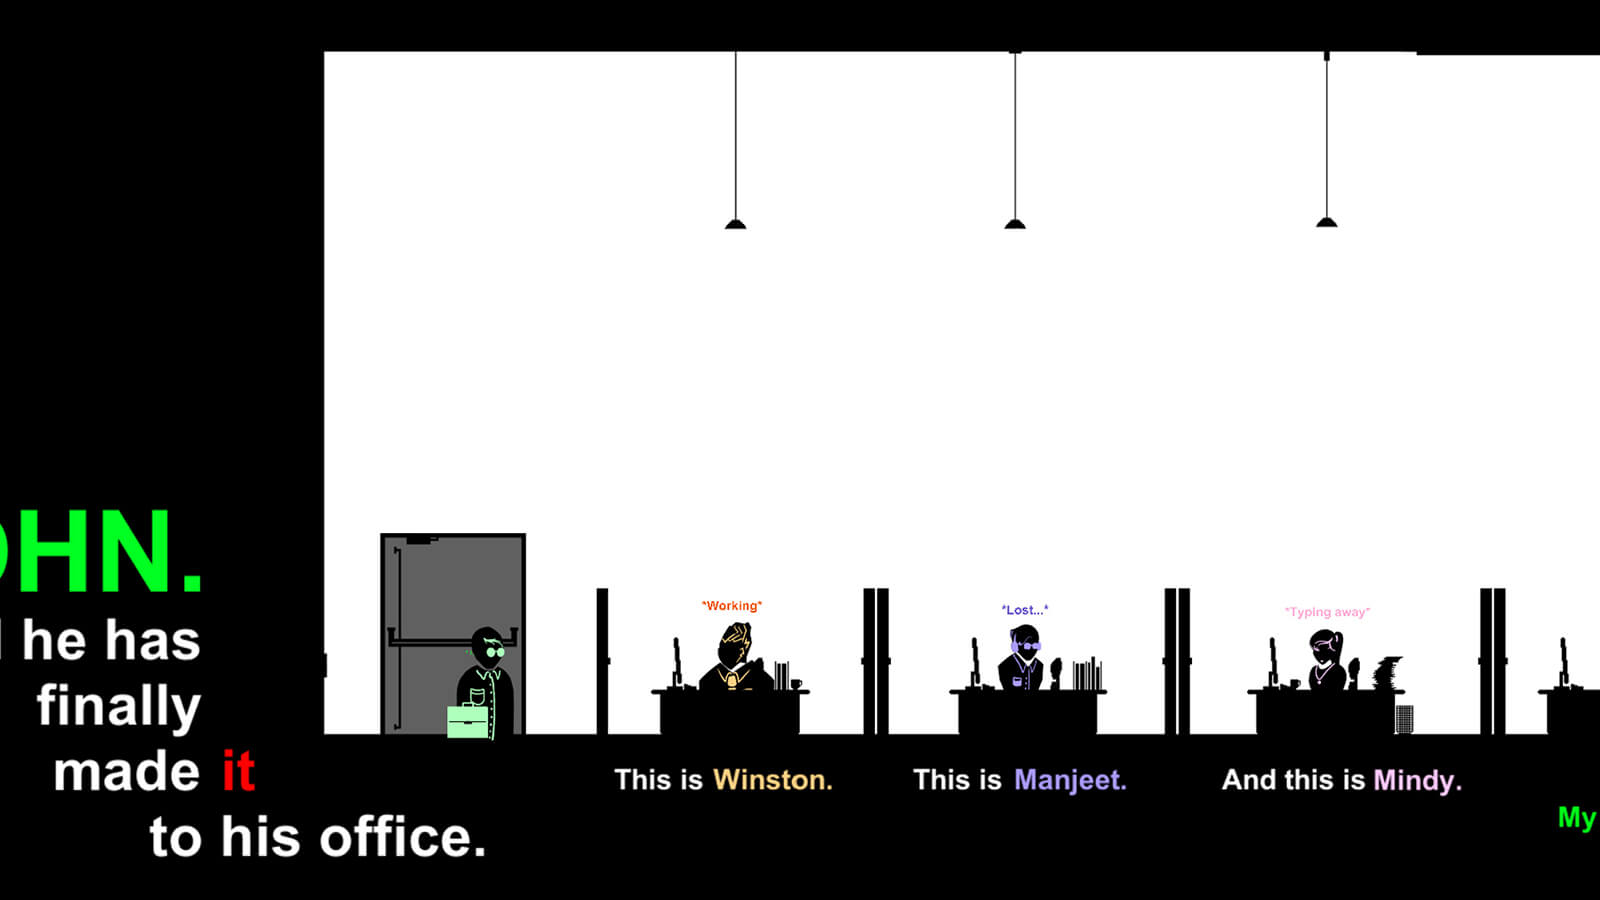 A flat, 2D character in silhouette holding a briefcase stands in an office with other silhouettes sitting at their desk.